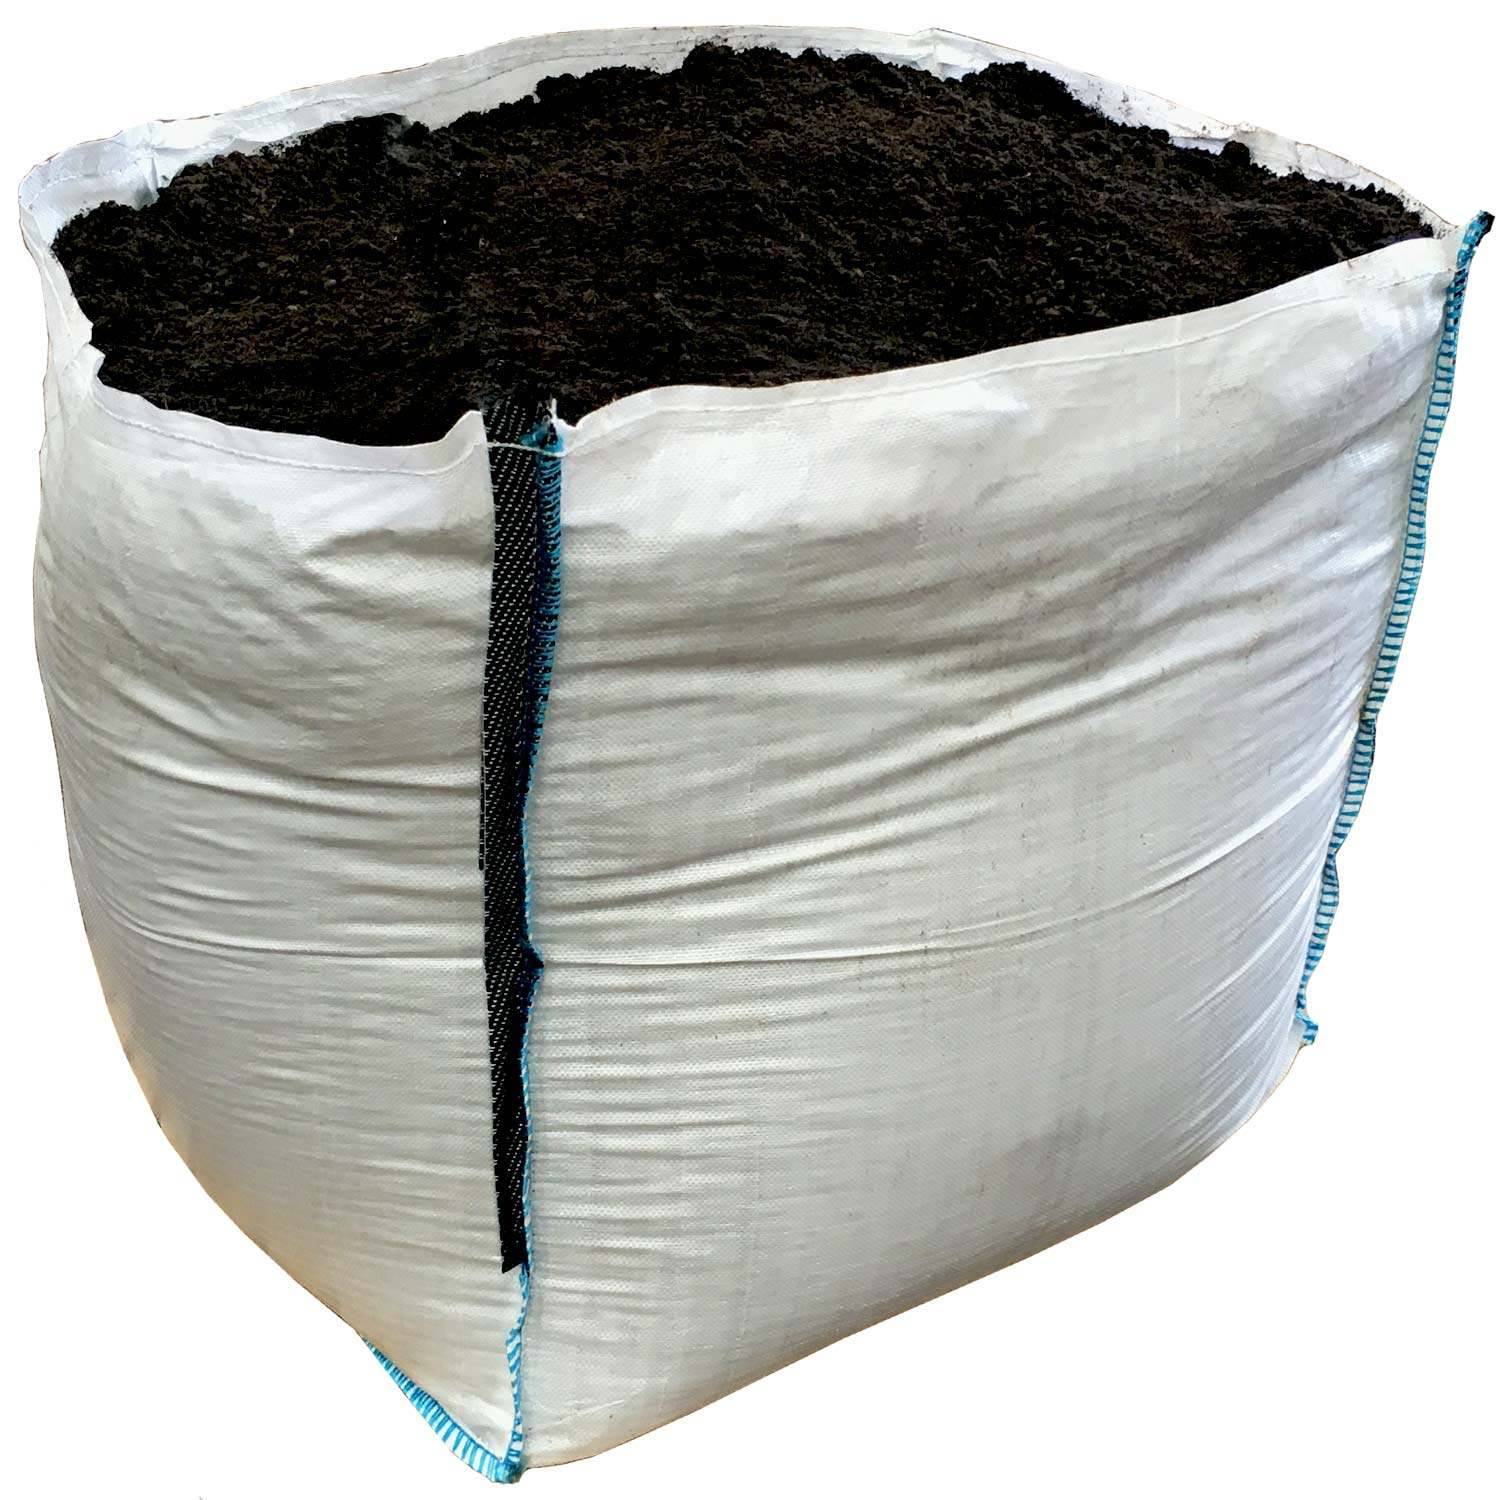 Organic compost online soil for Compost soil bags